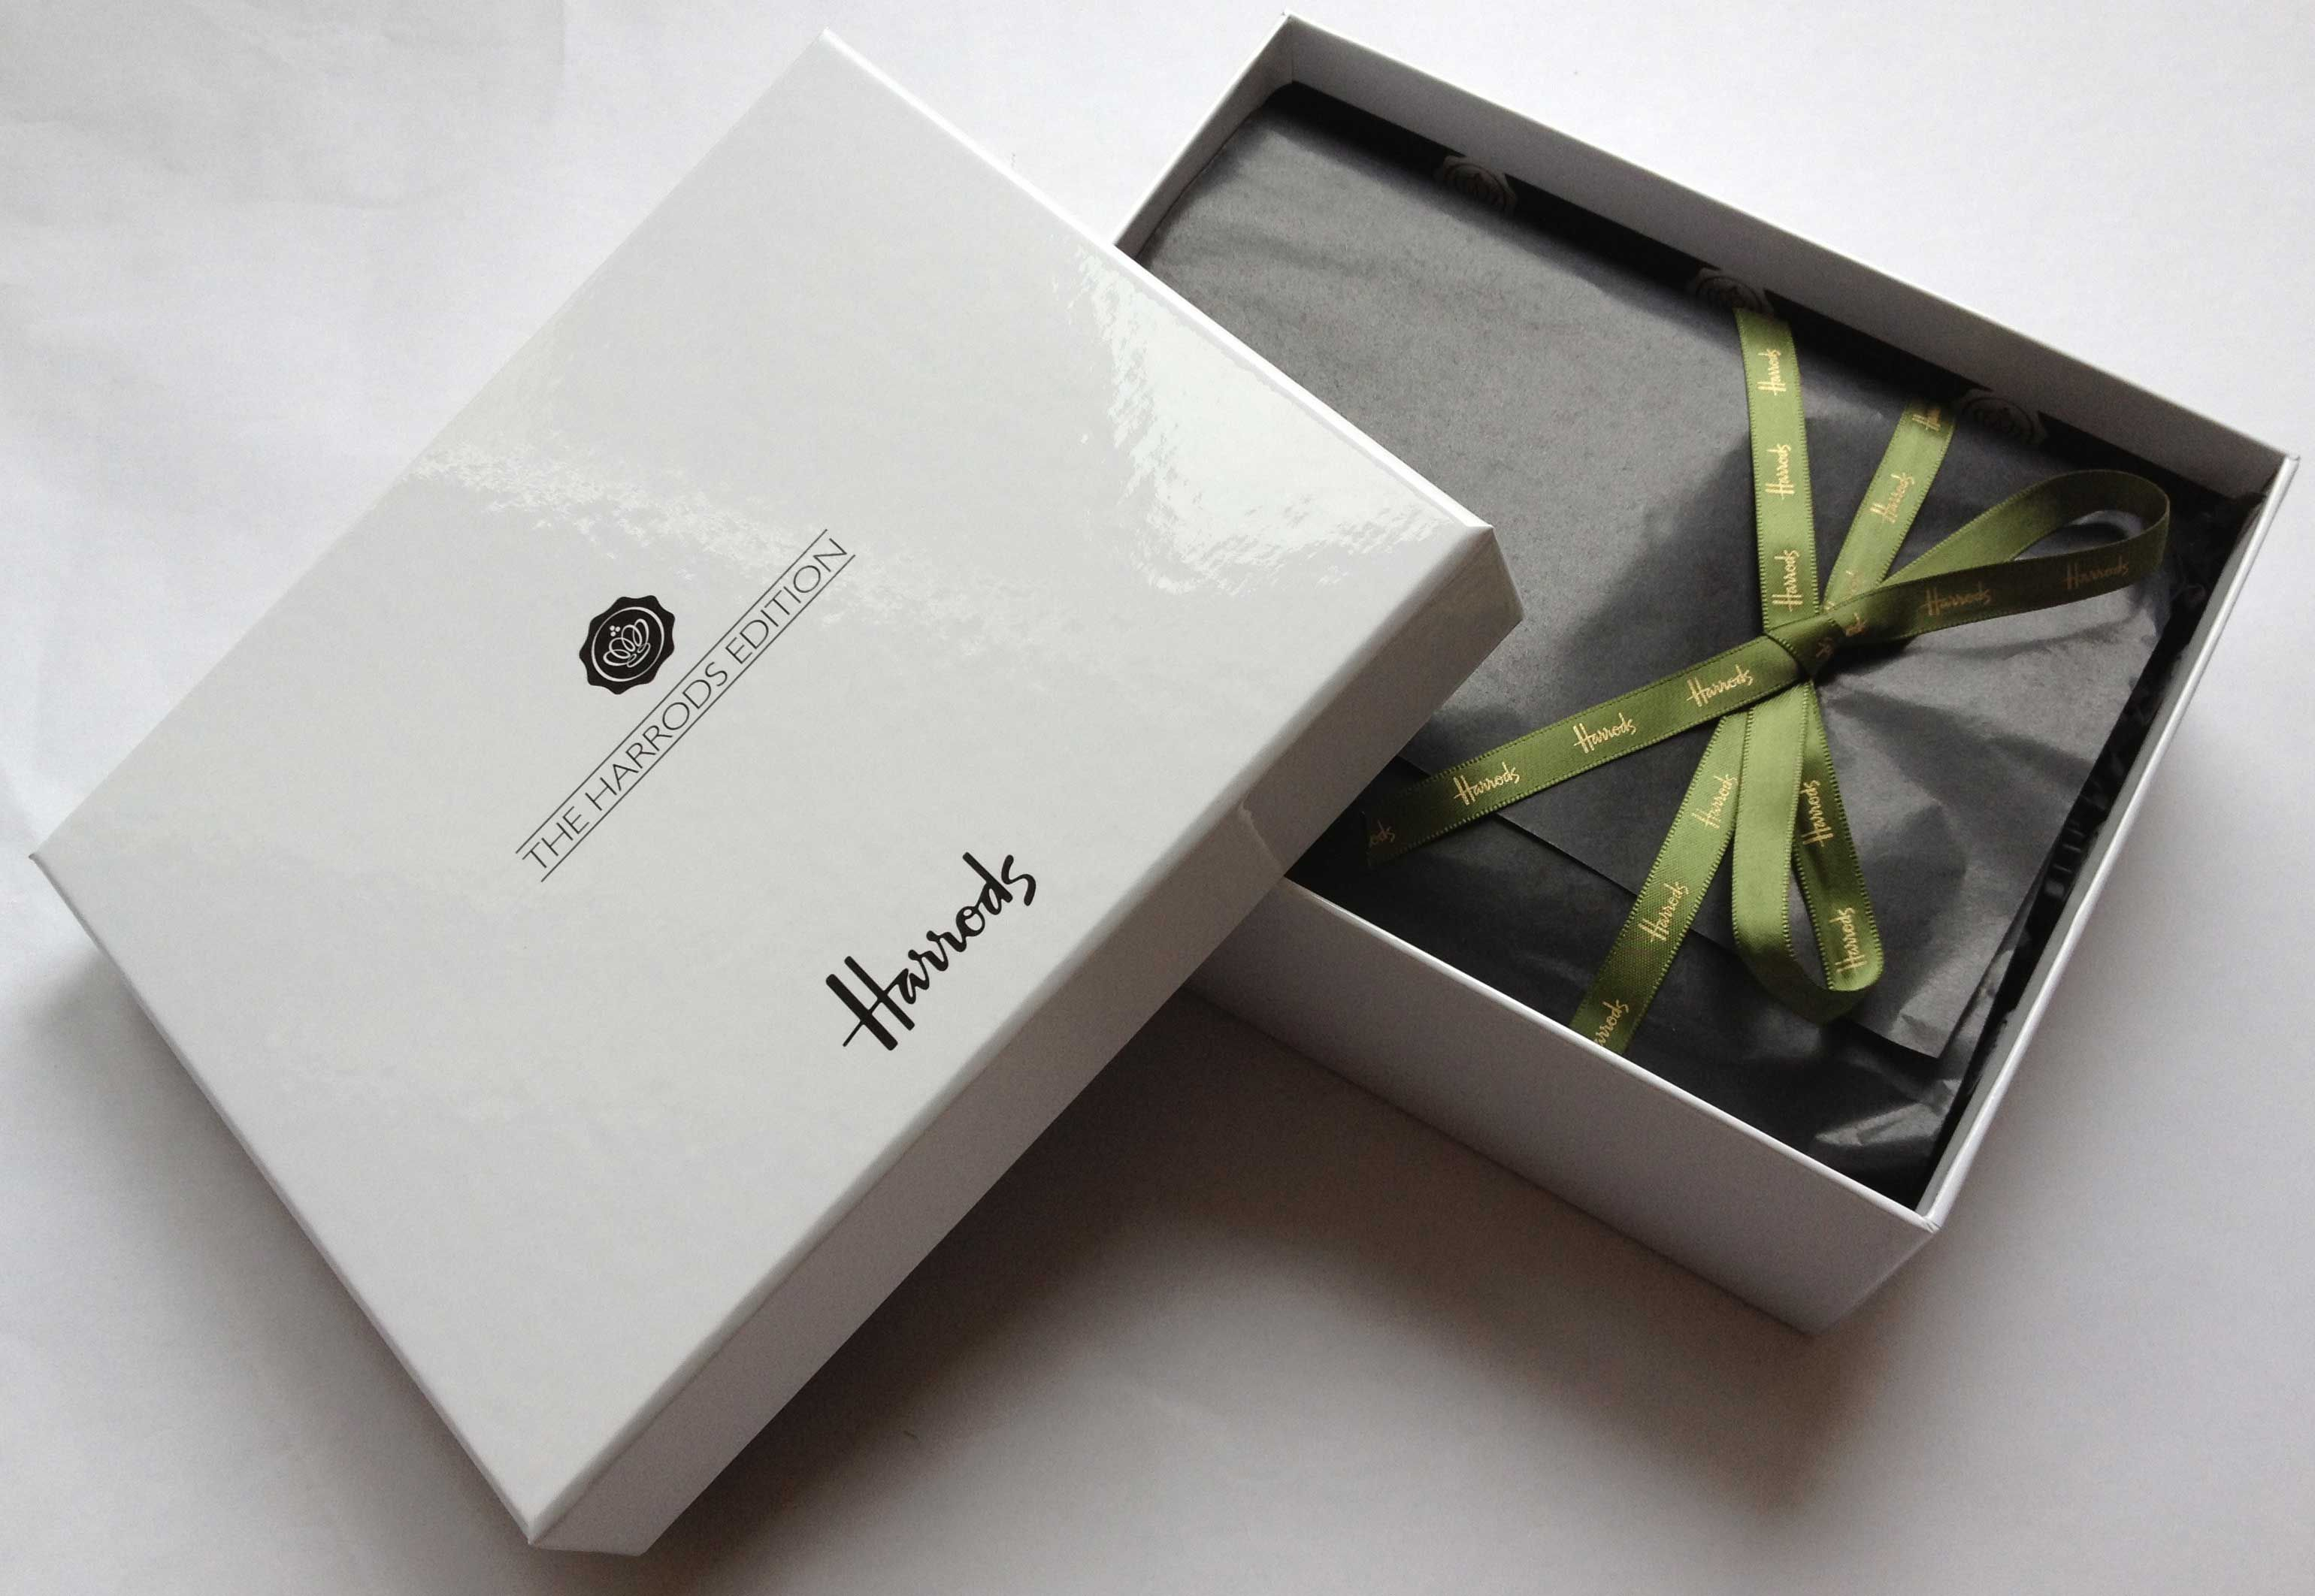 Glossy Box Harrods Edition Review - Briar Rose Beauty